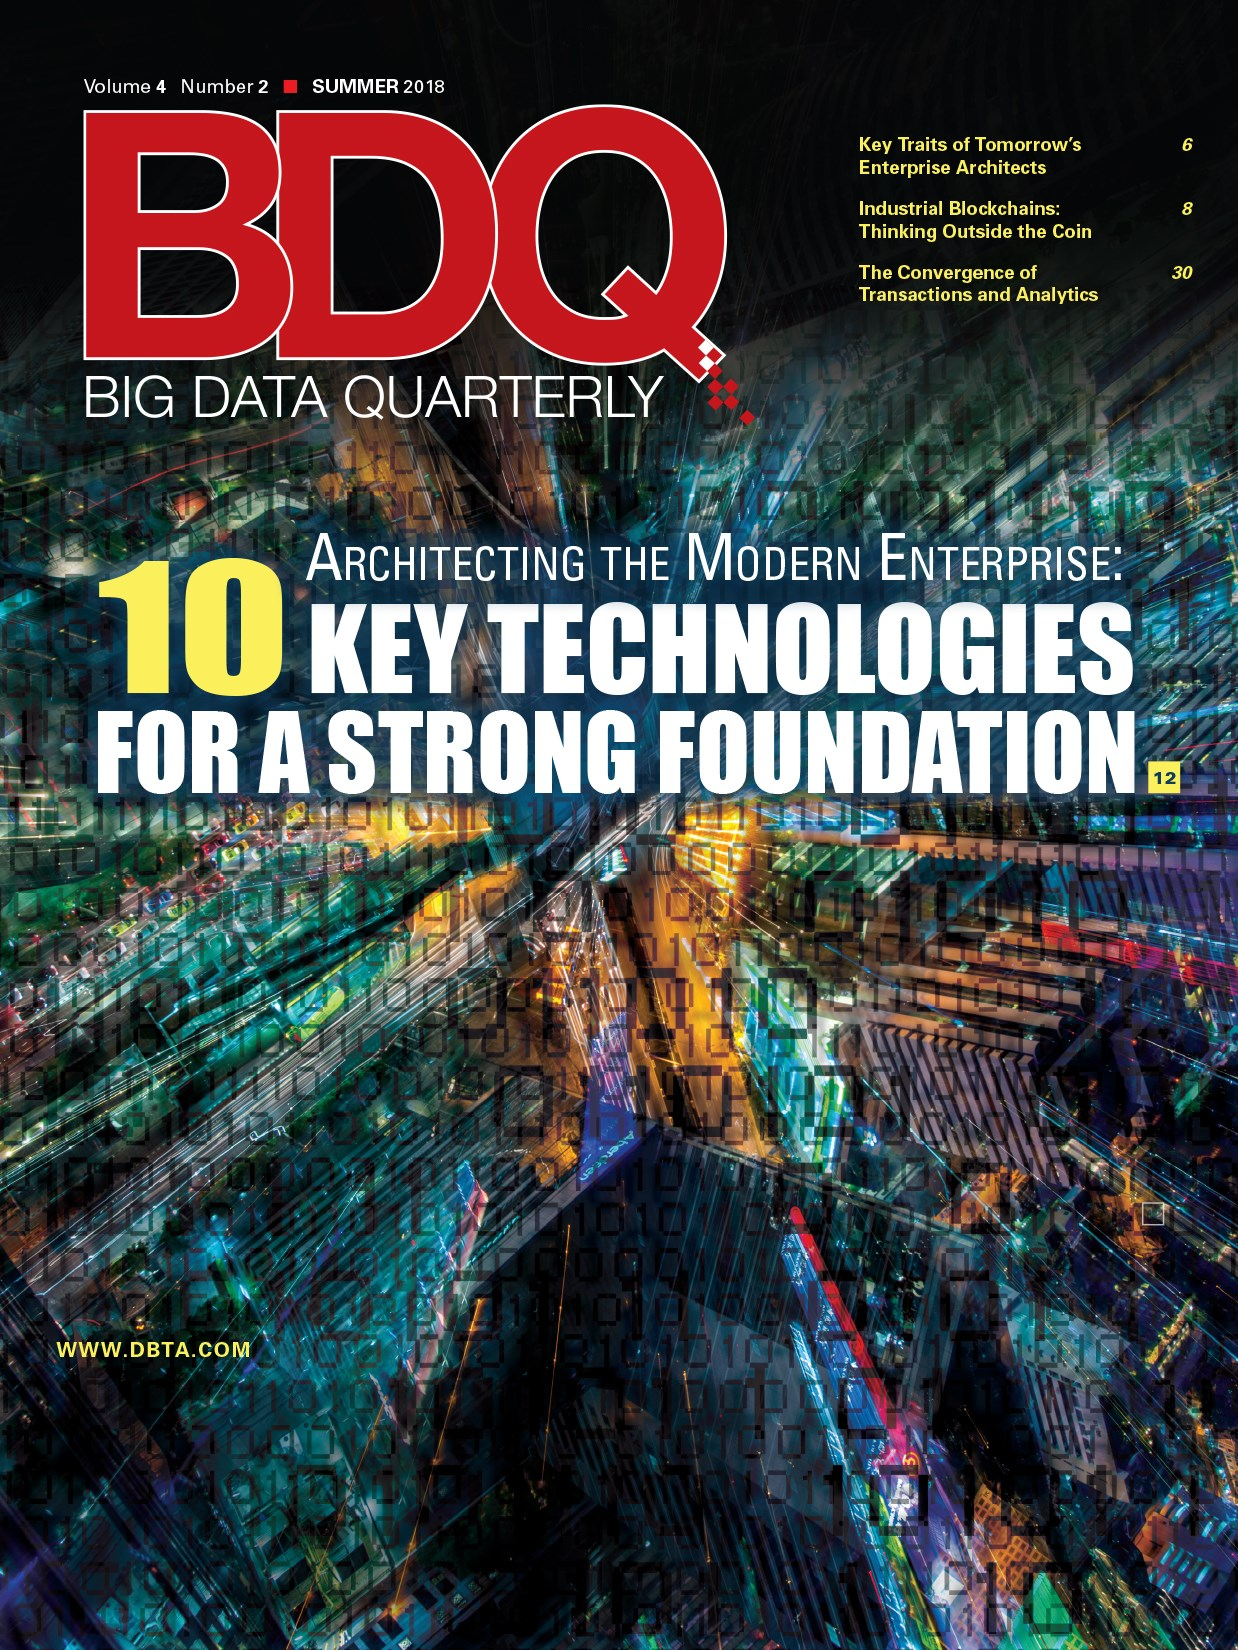 Big Data Quarterly: Summer 2018 Issue